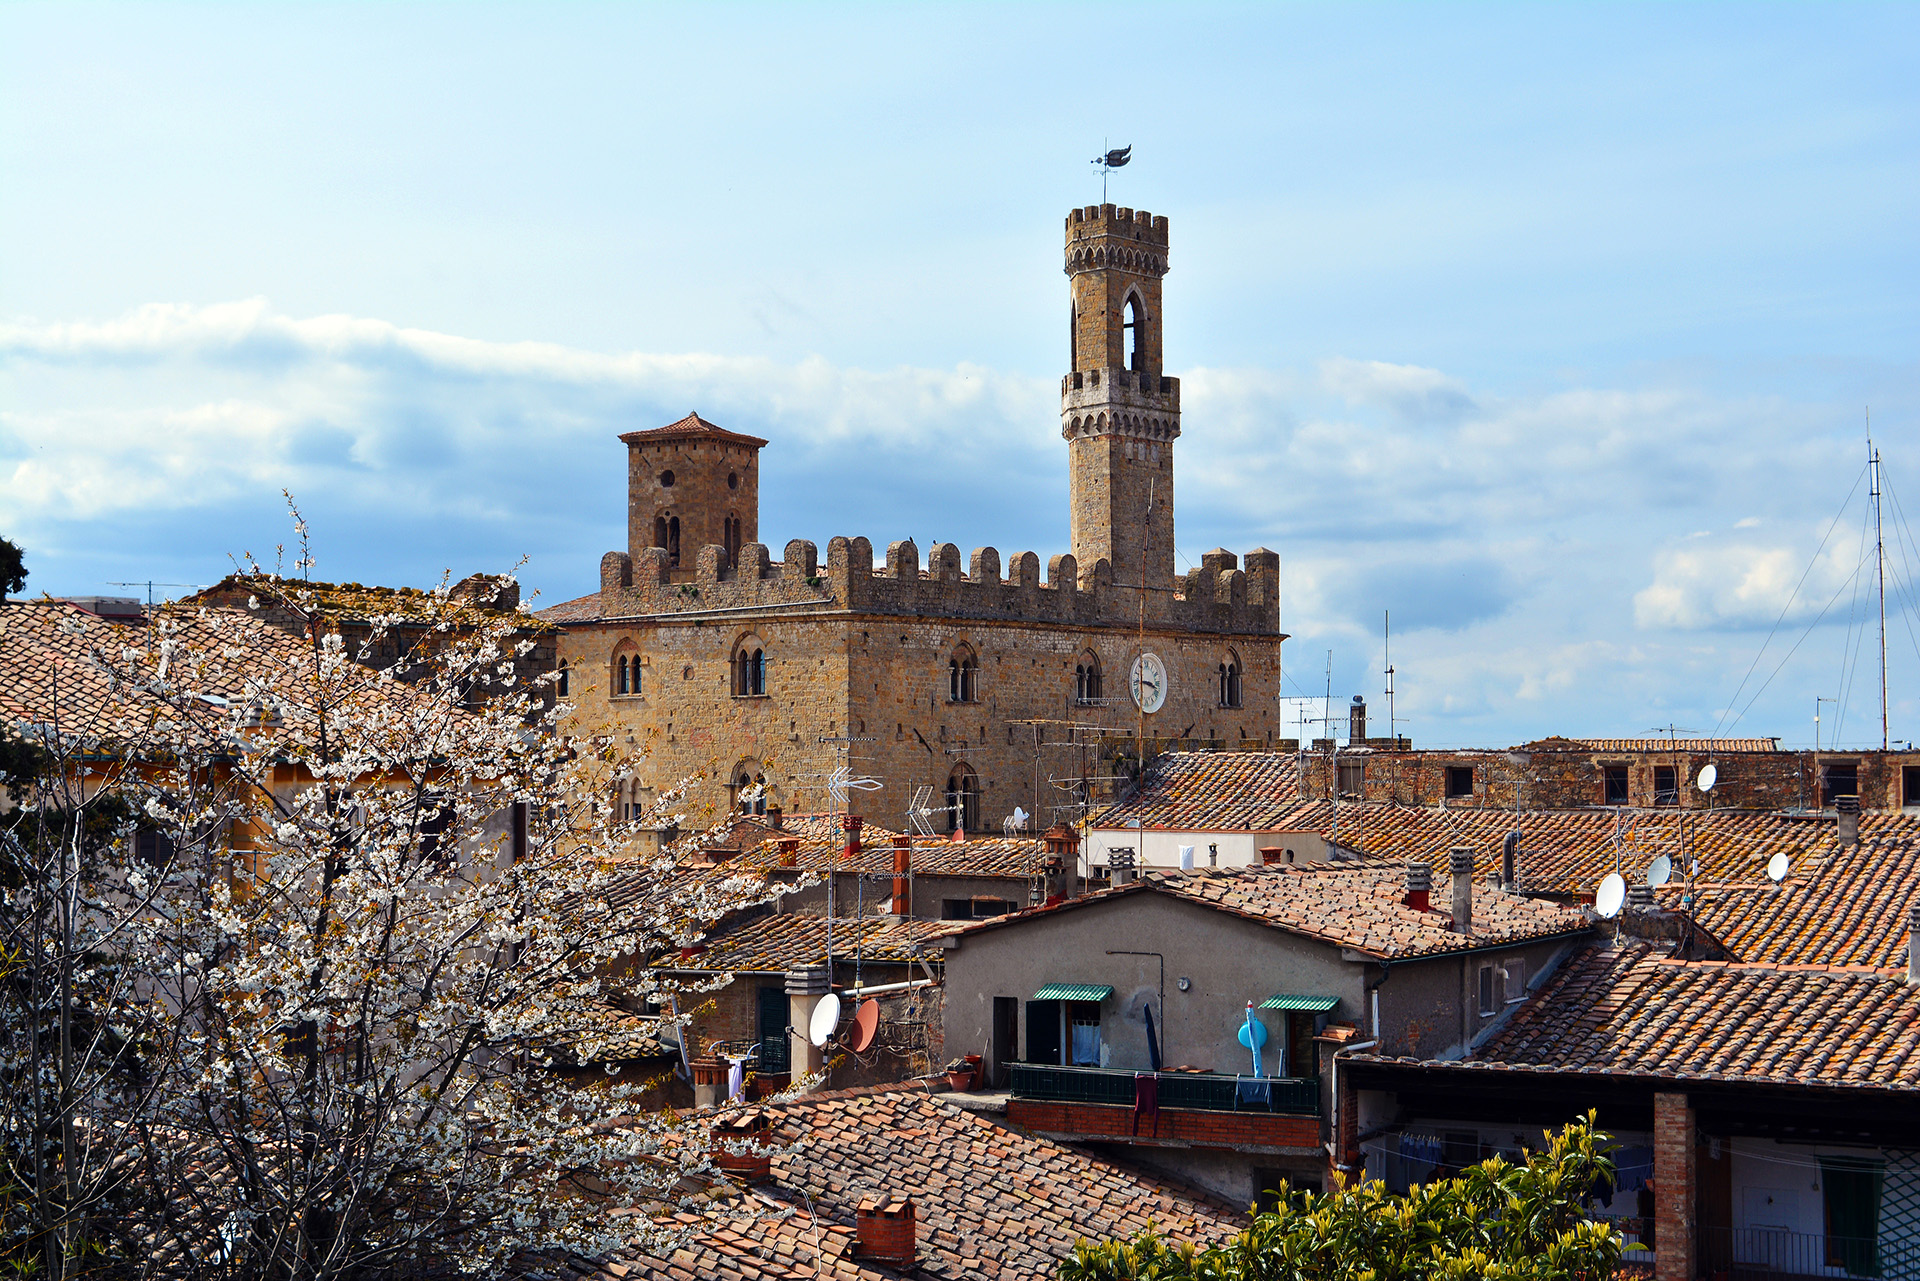 Volterra – the heart of Tuscany